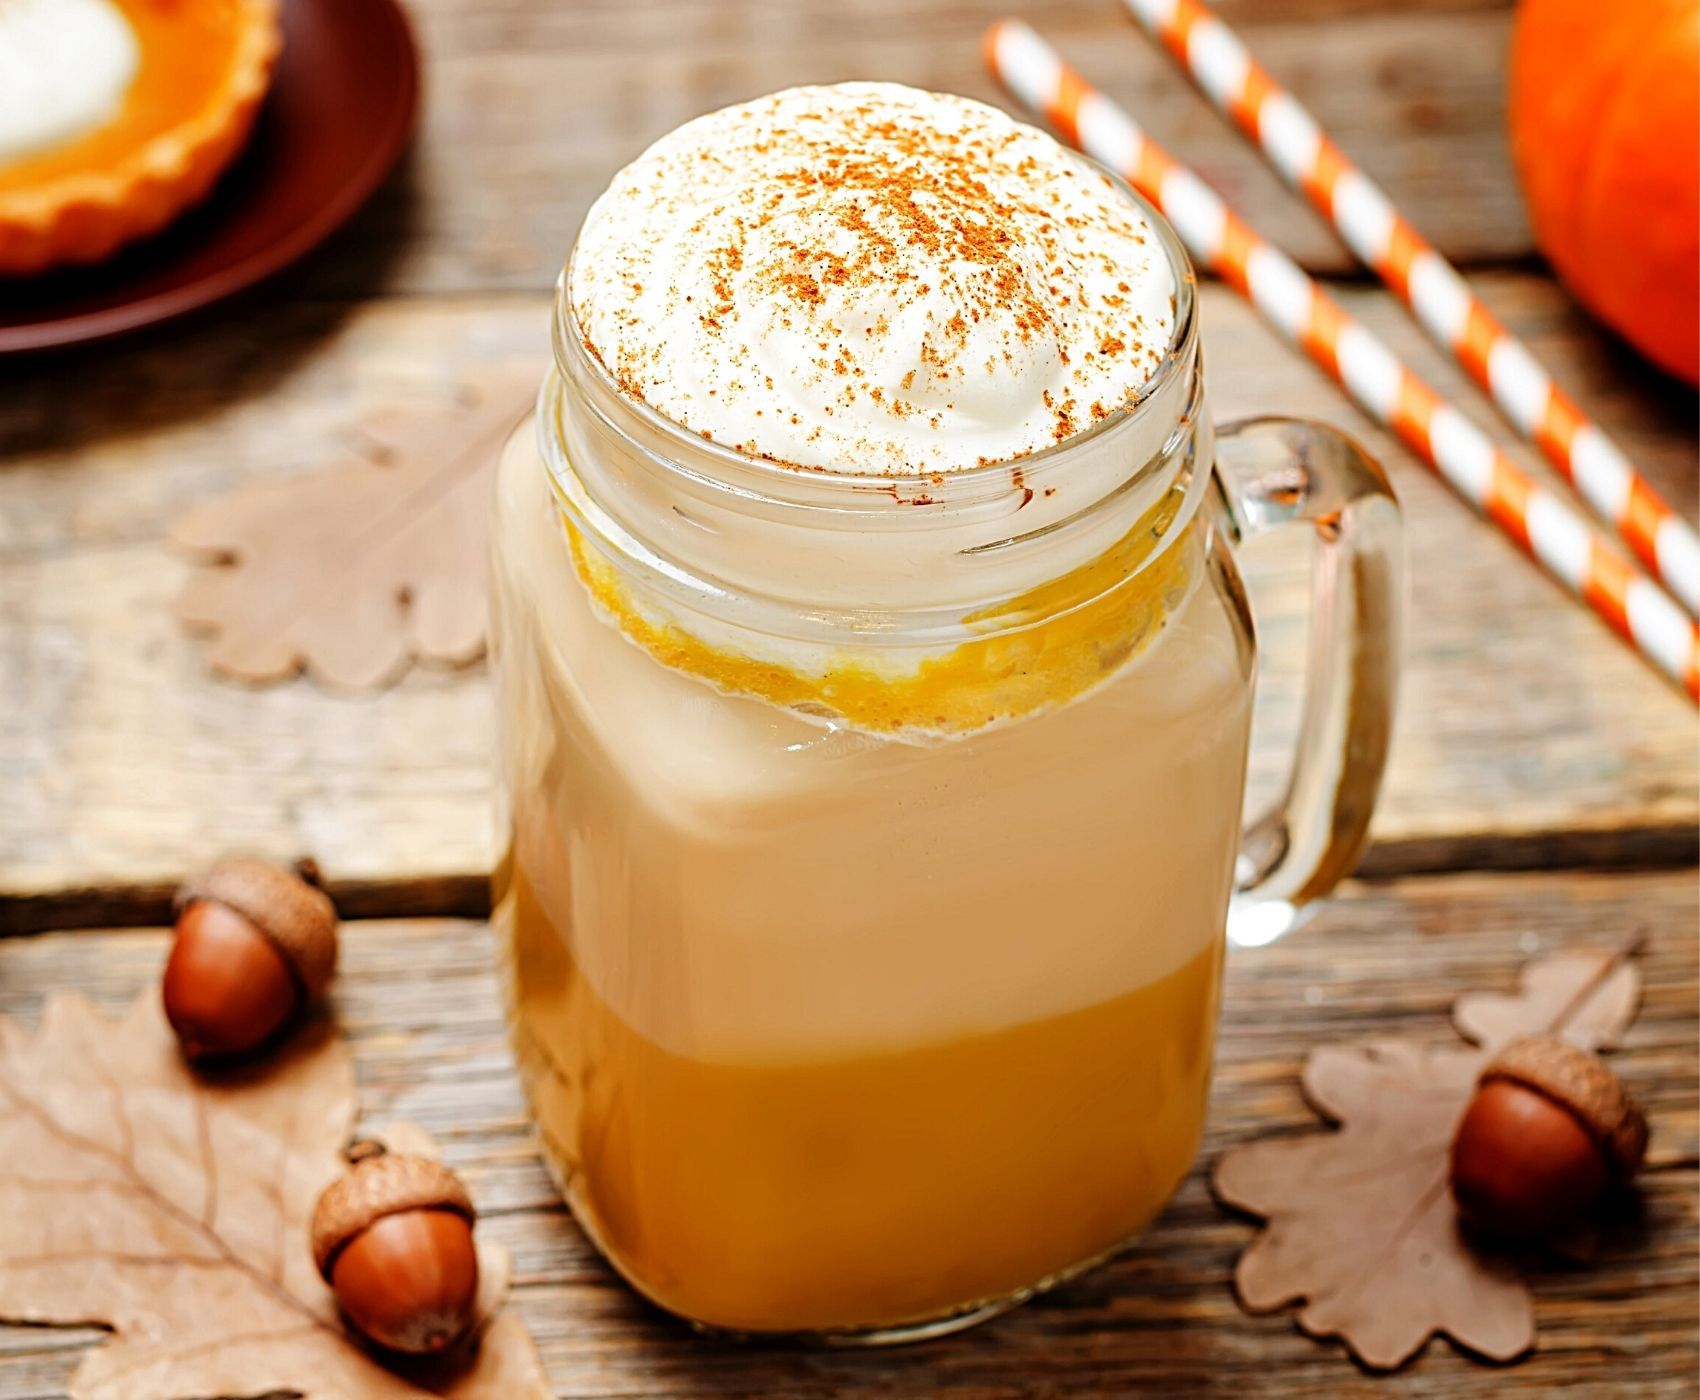 The Best Pumpkin Spice Drink Recipes